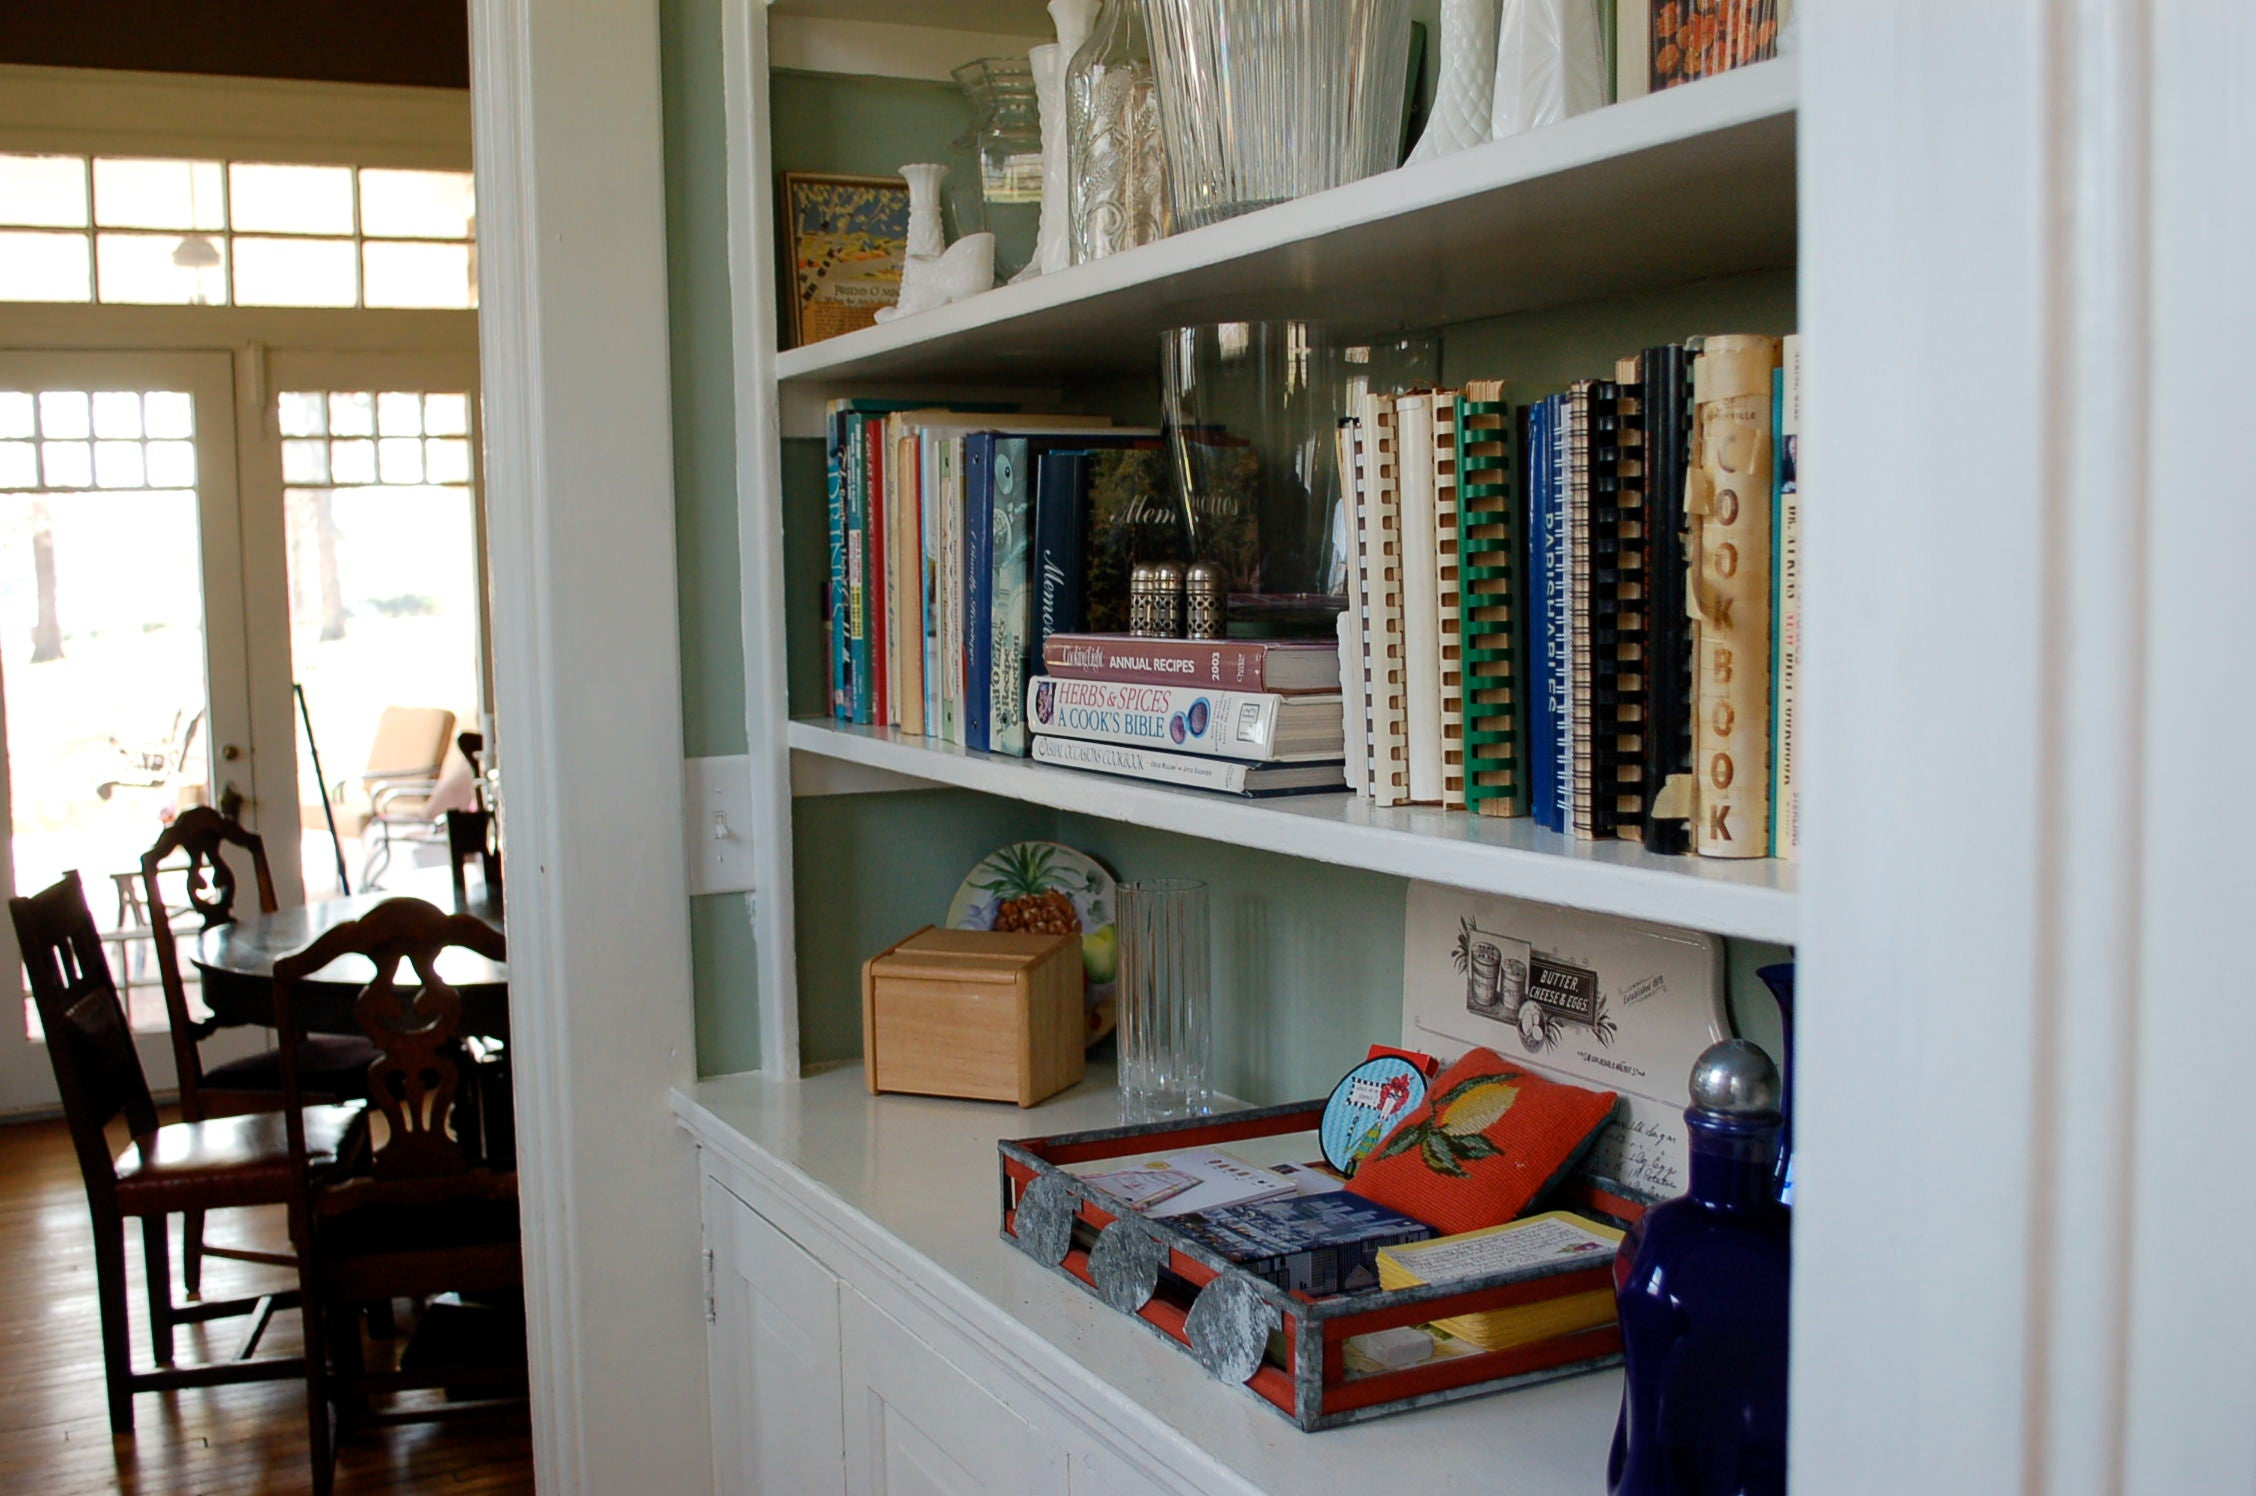 organized shelves, books, neat